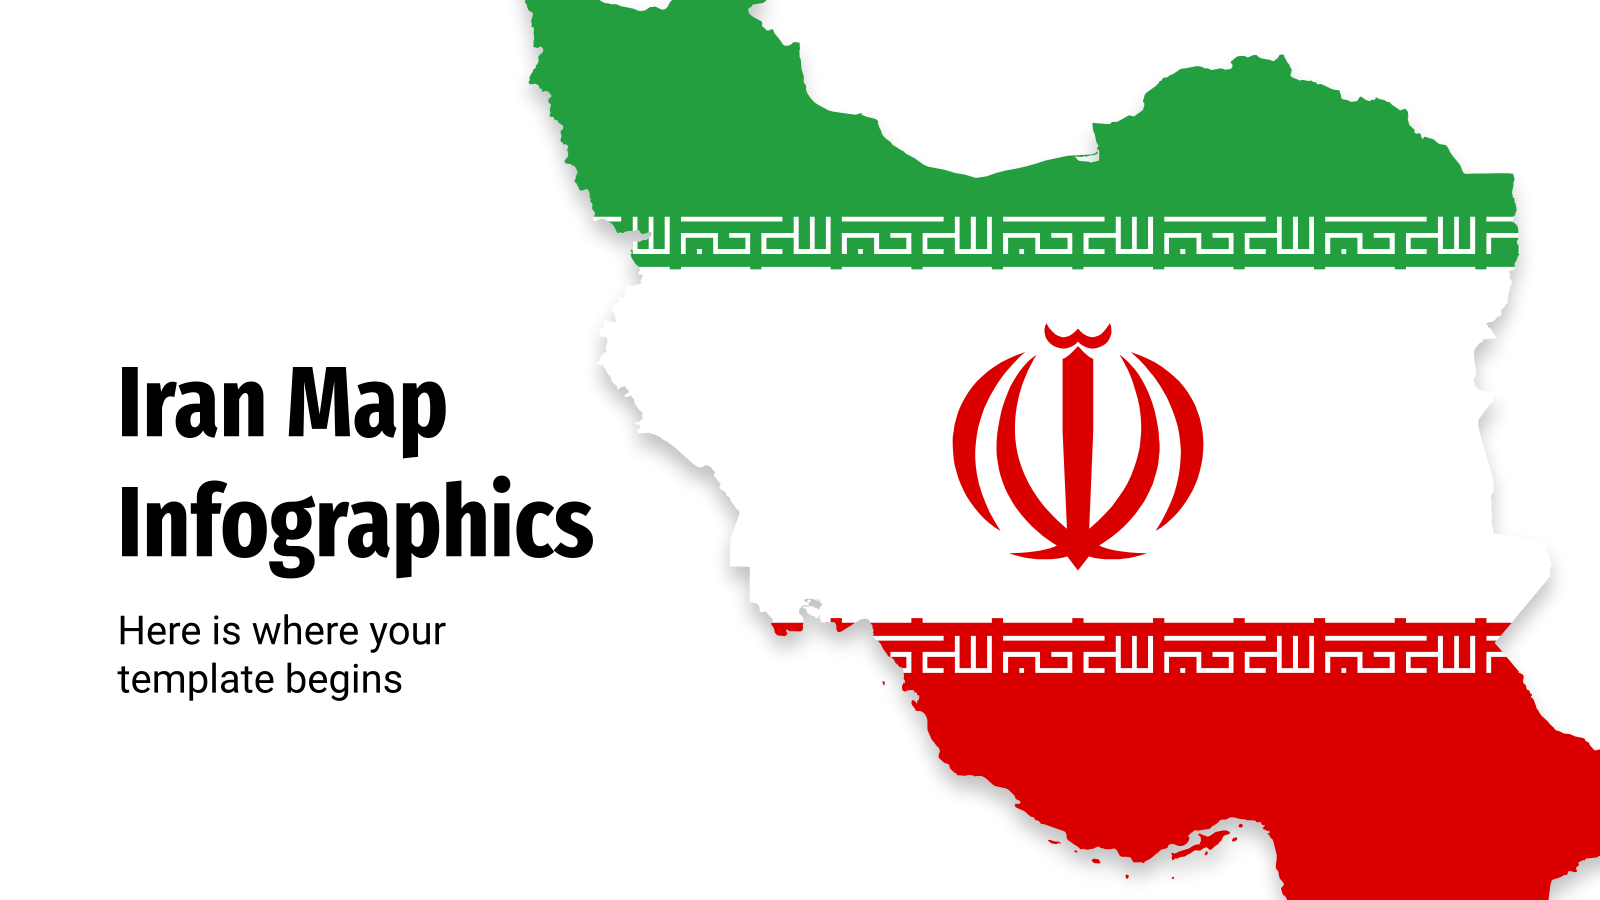 Iran Map Infographics presentation template